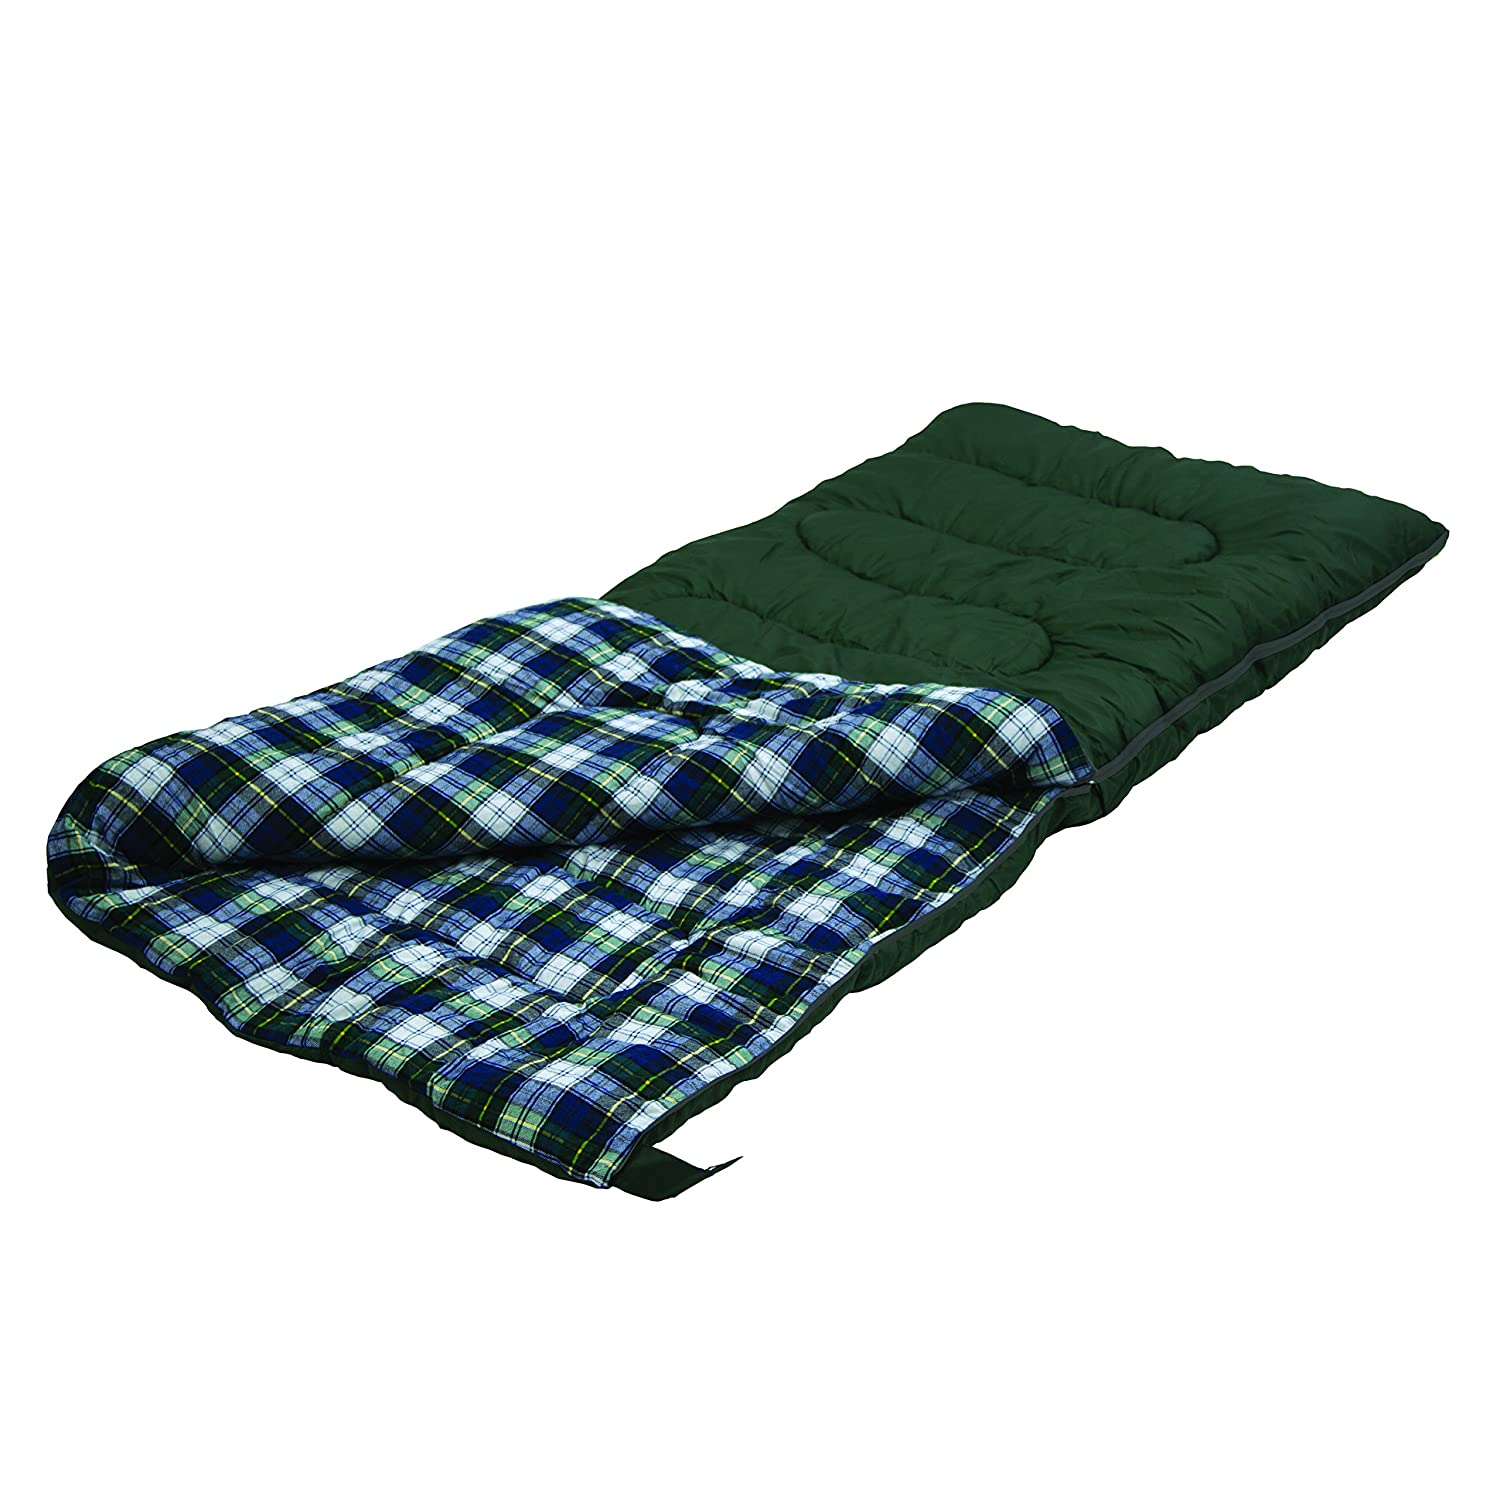 Stansport Weekender 4 Lb. Rectangular Sleeping Bag, 75 x 33 – Dark Forest Green